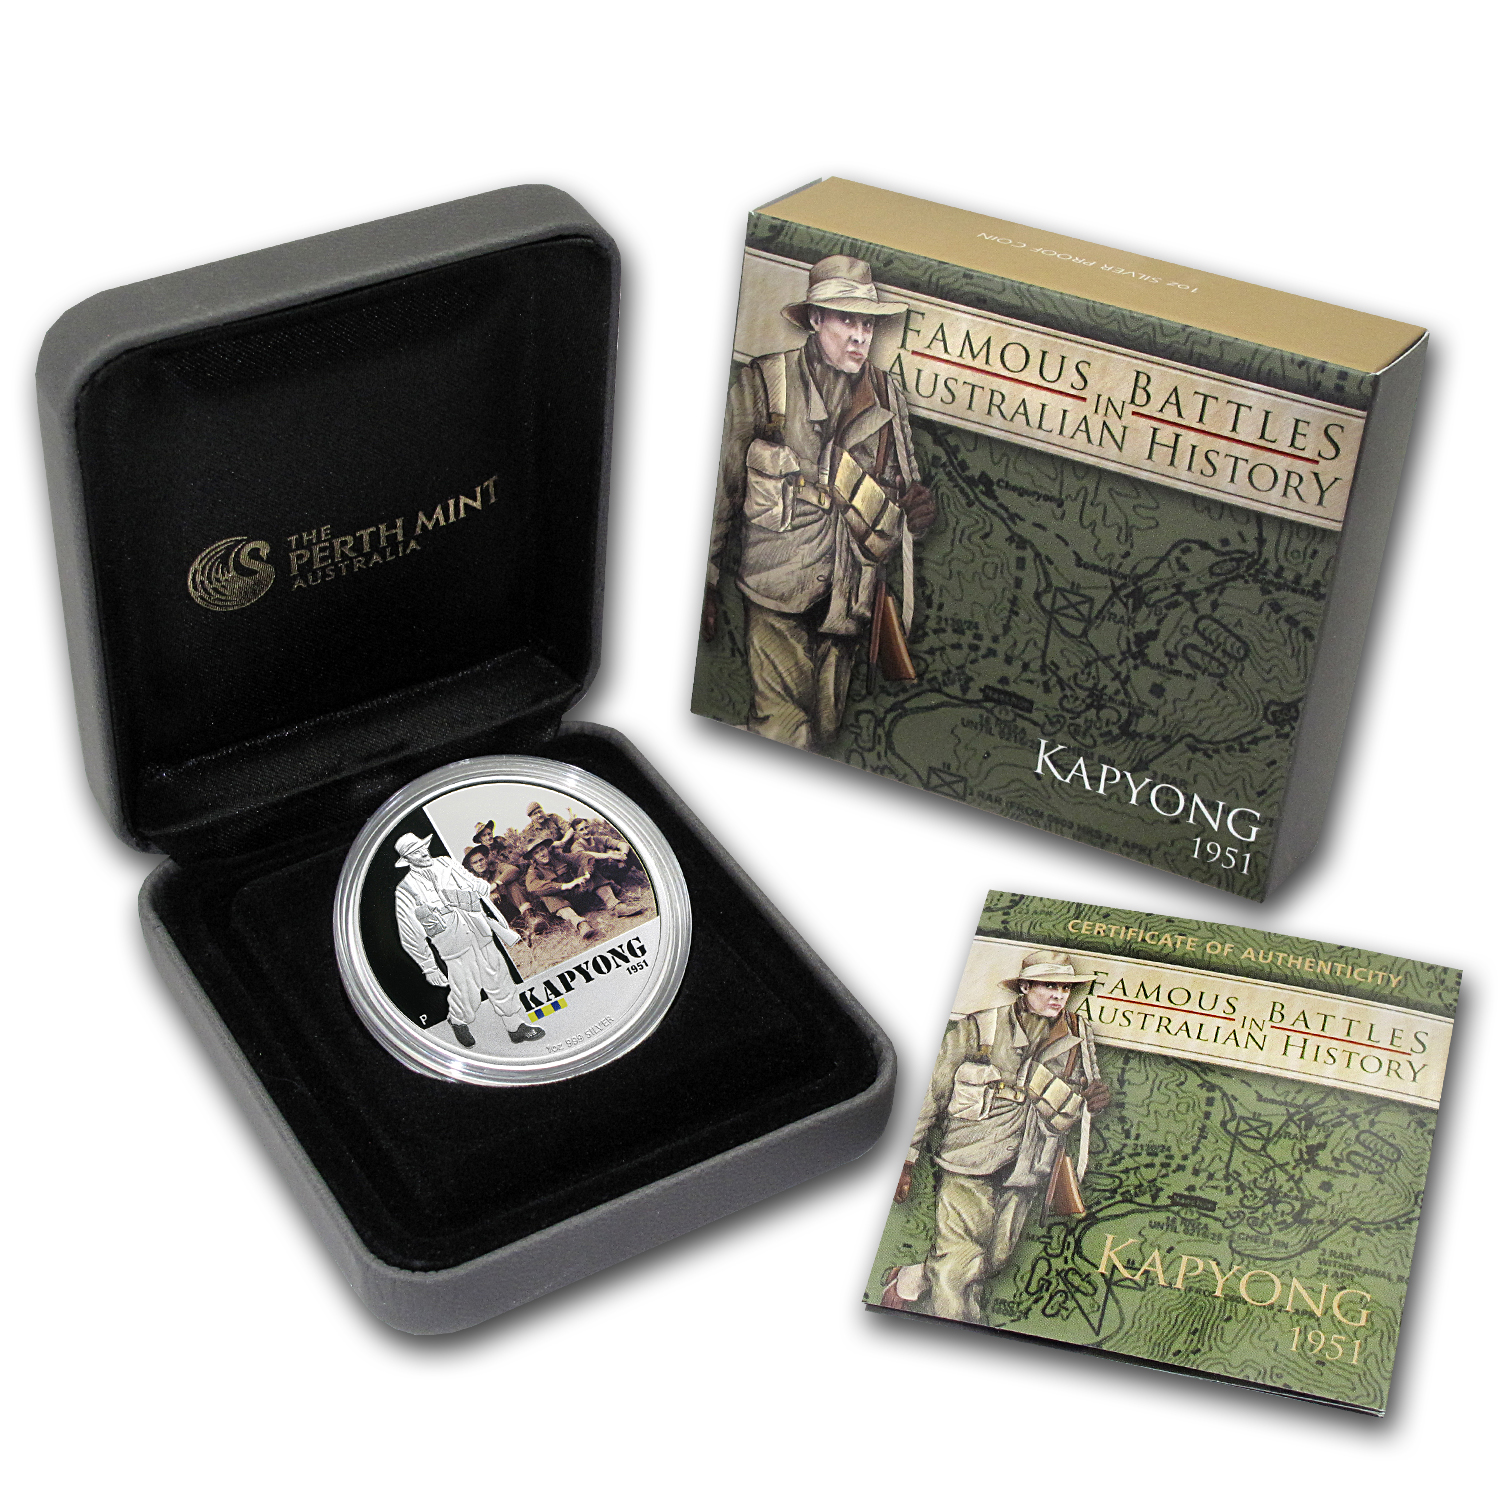 2012 1 oz Proof Silver Battle of Kapyong - Australian History